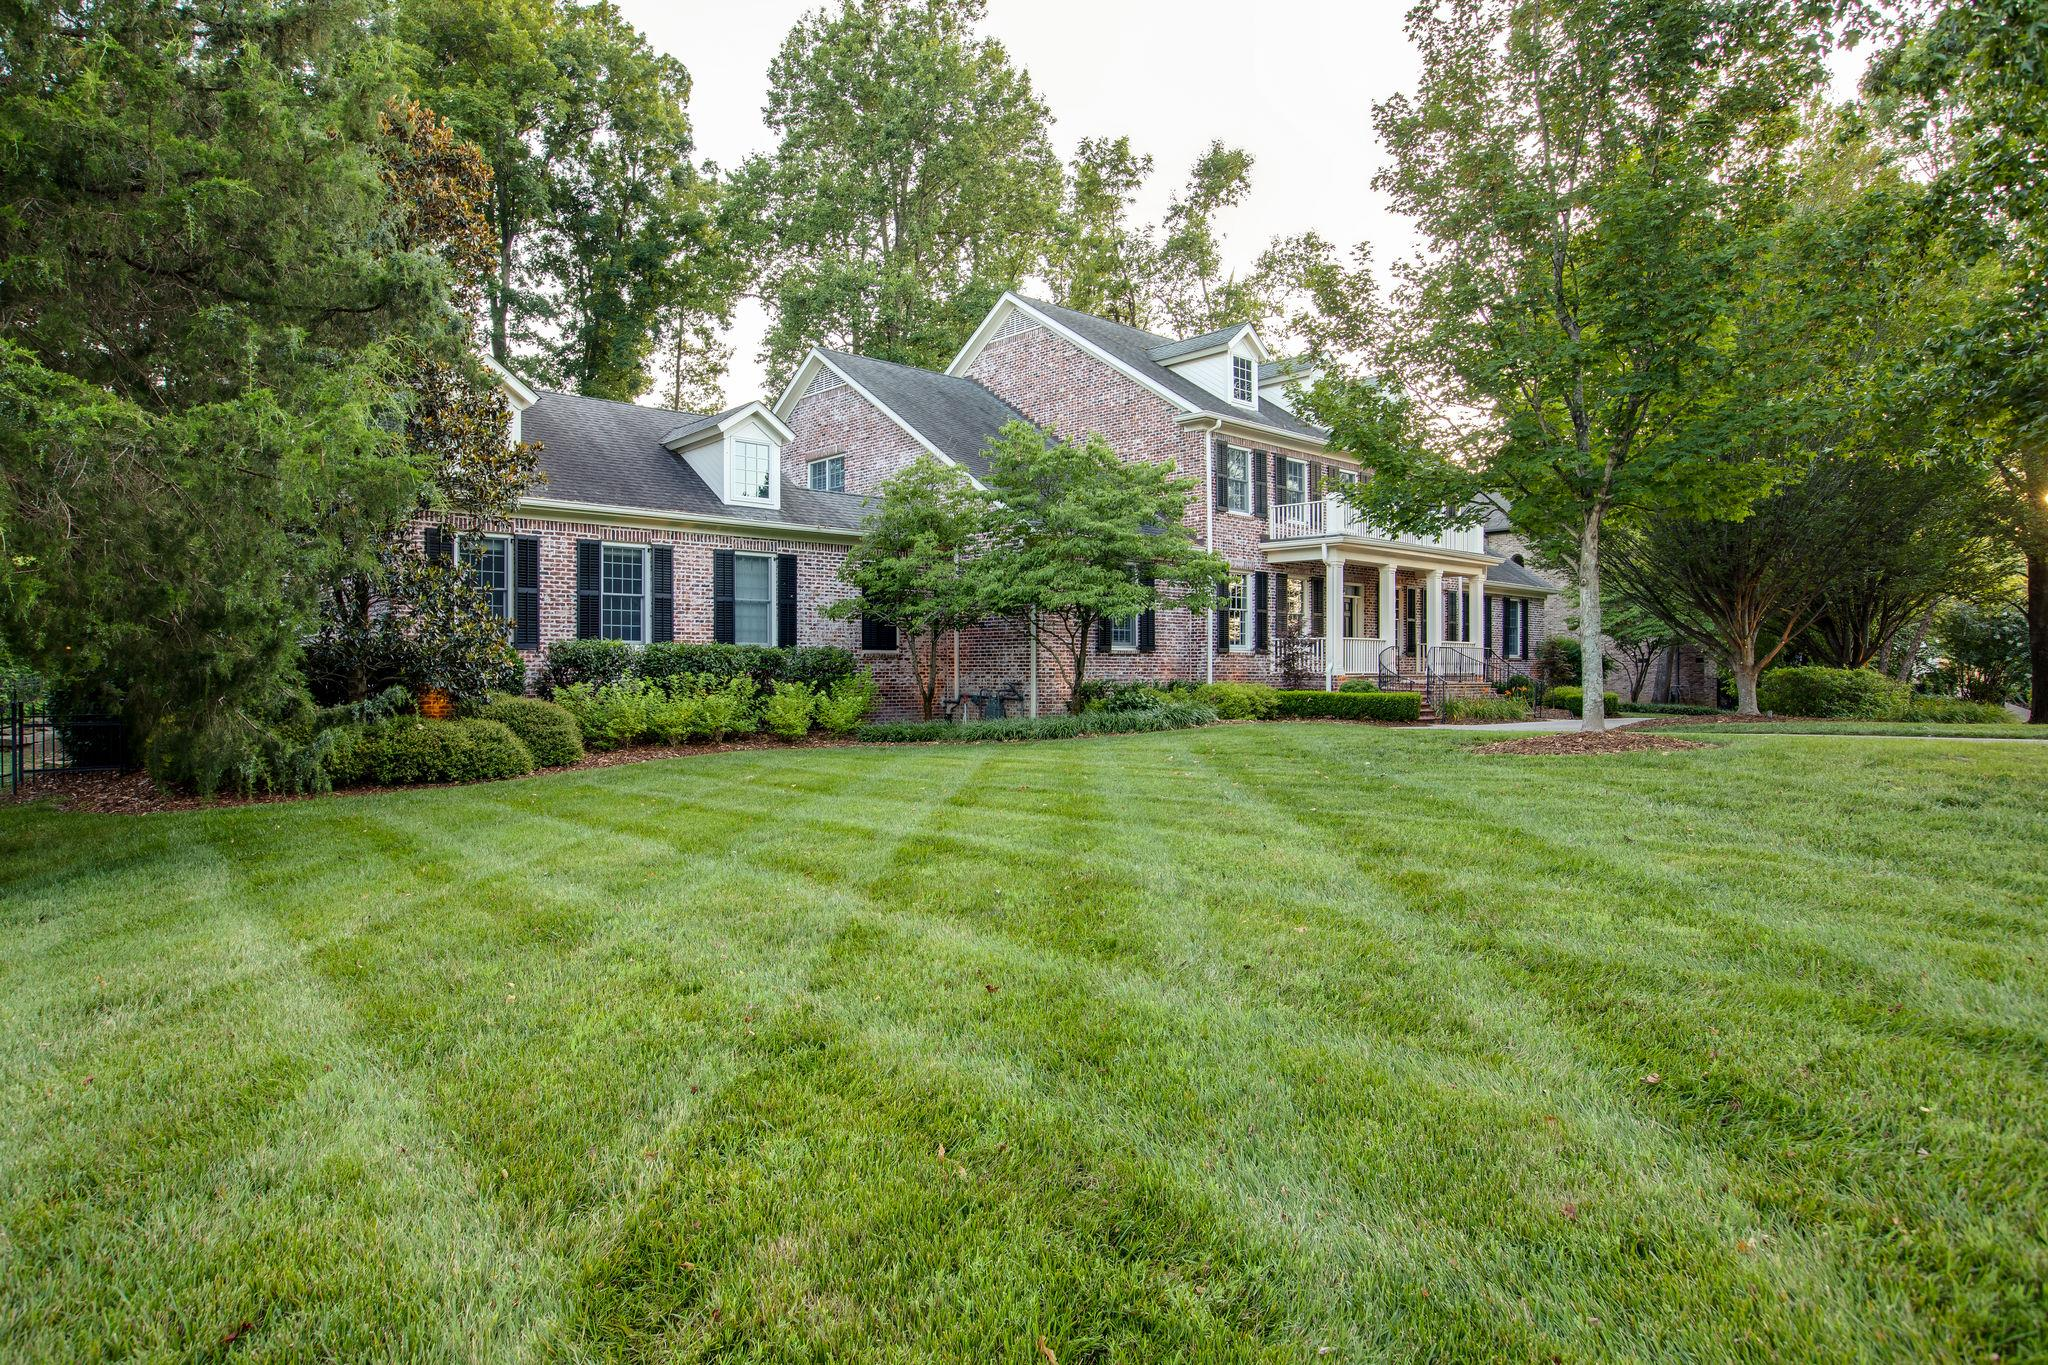 230 Governors Way, Brentwood, TN 37027 - Brentwood, TN real estate listing